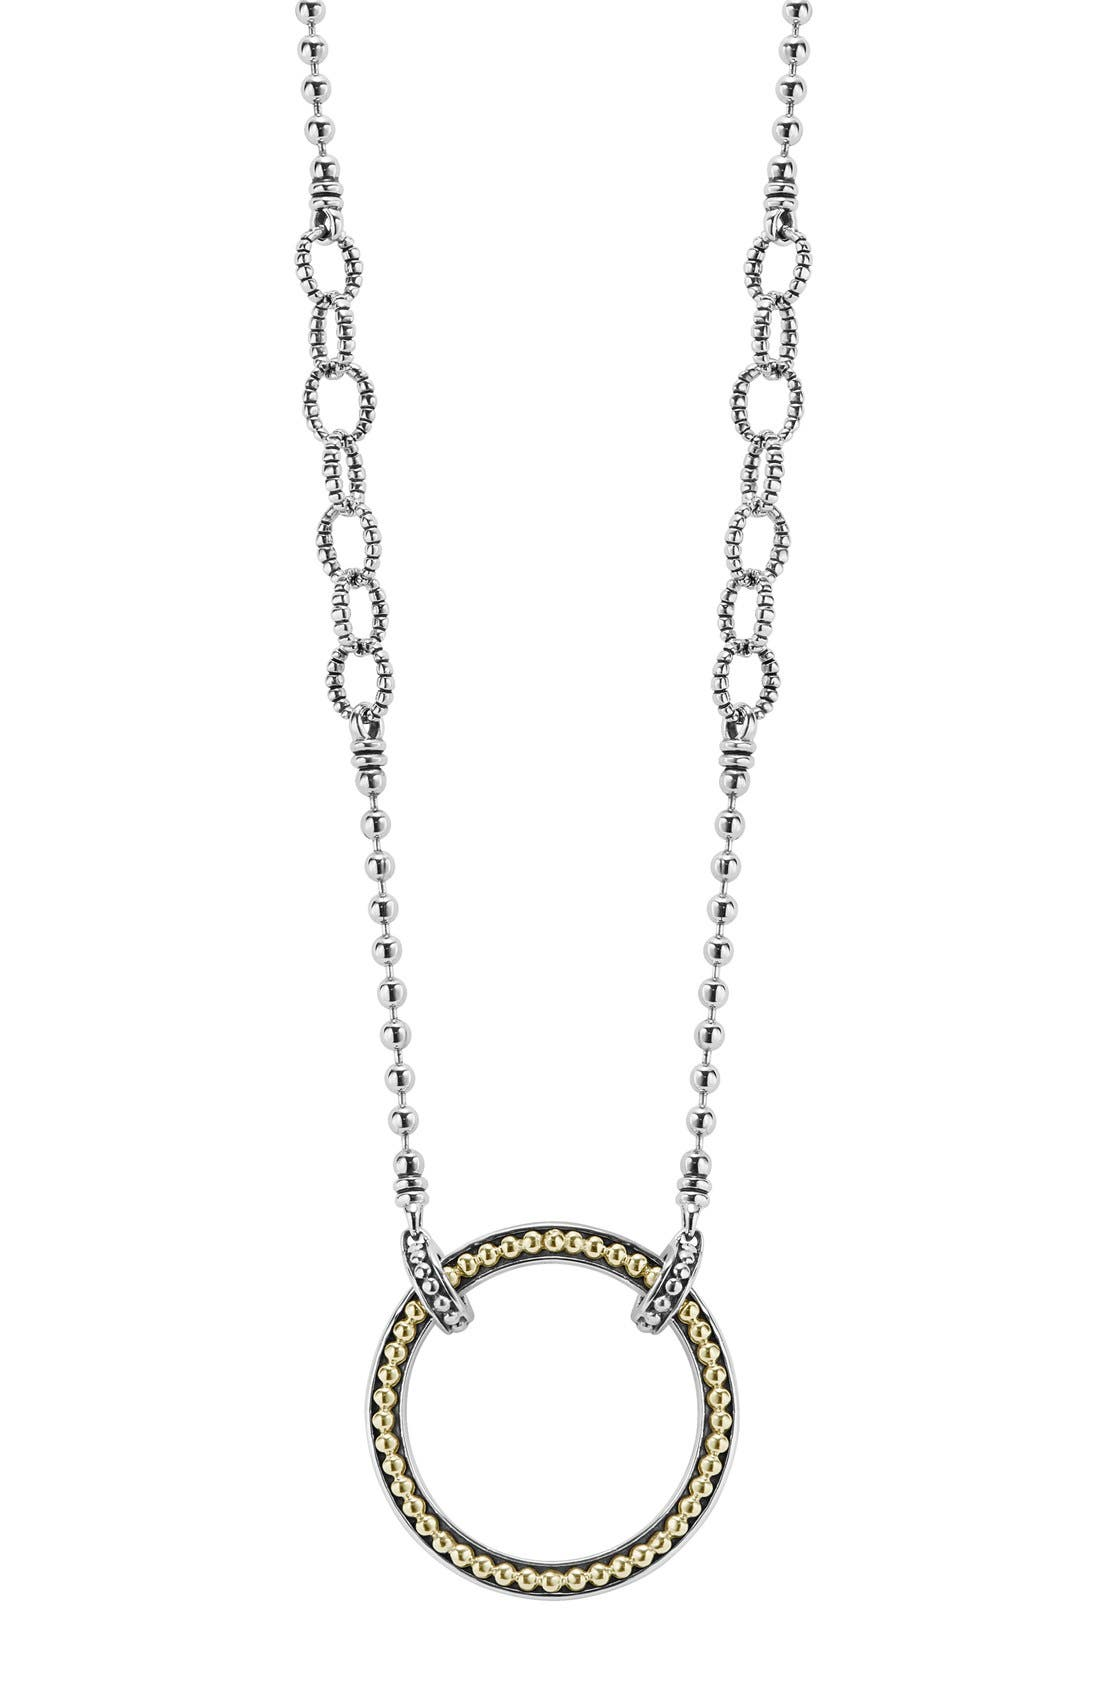 Enso Pendant Necklace,                         Main,                         color, SILVER/ GOLD